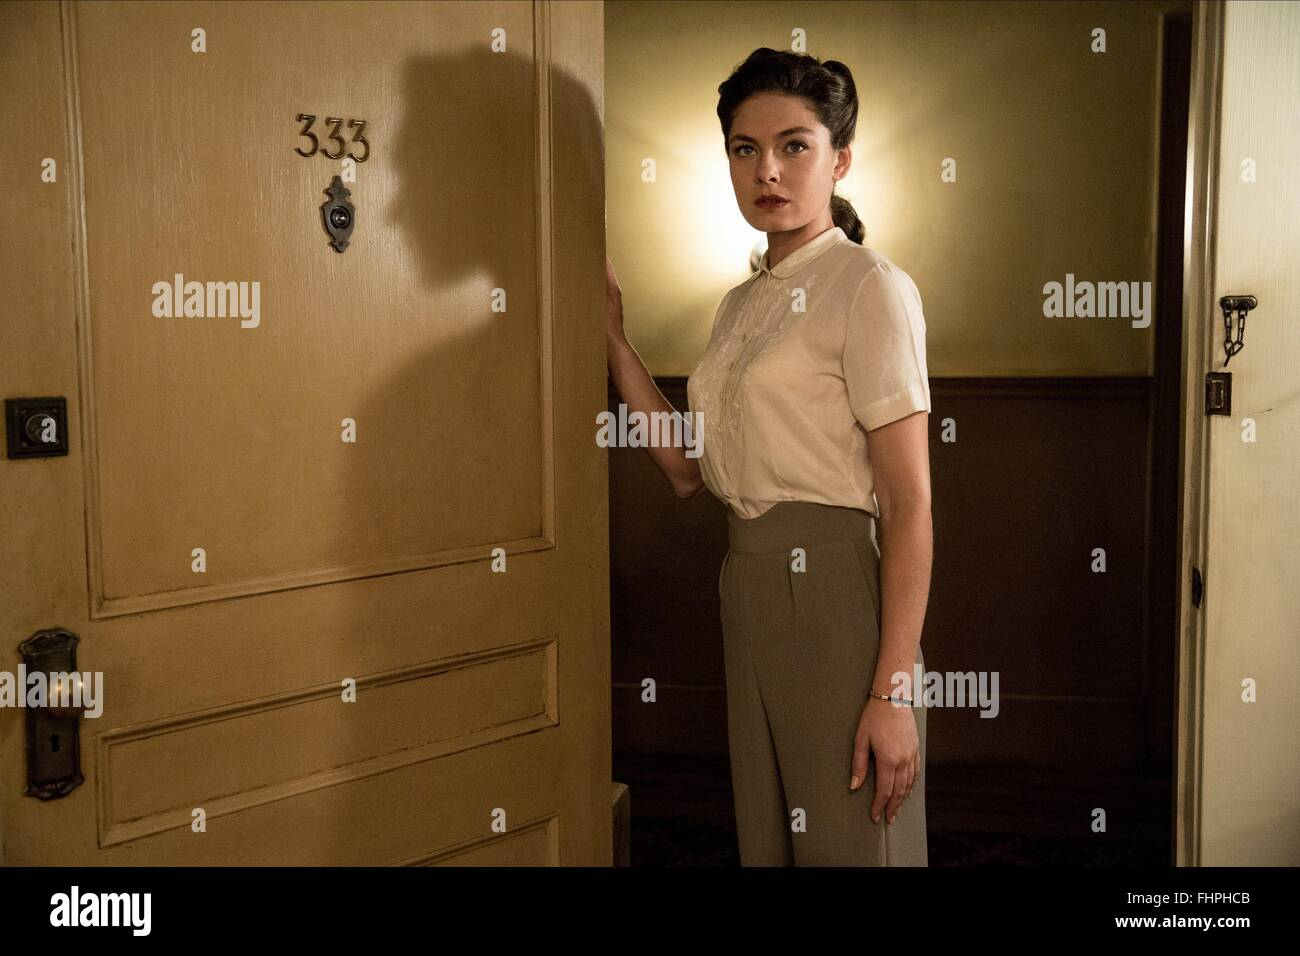 Alexa Davalos Mob City: ALEXA DAVALOS MOB CITY (2013 Stock Photo: 96997611